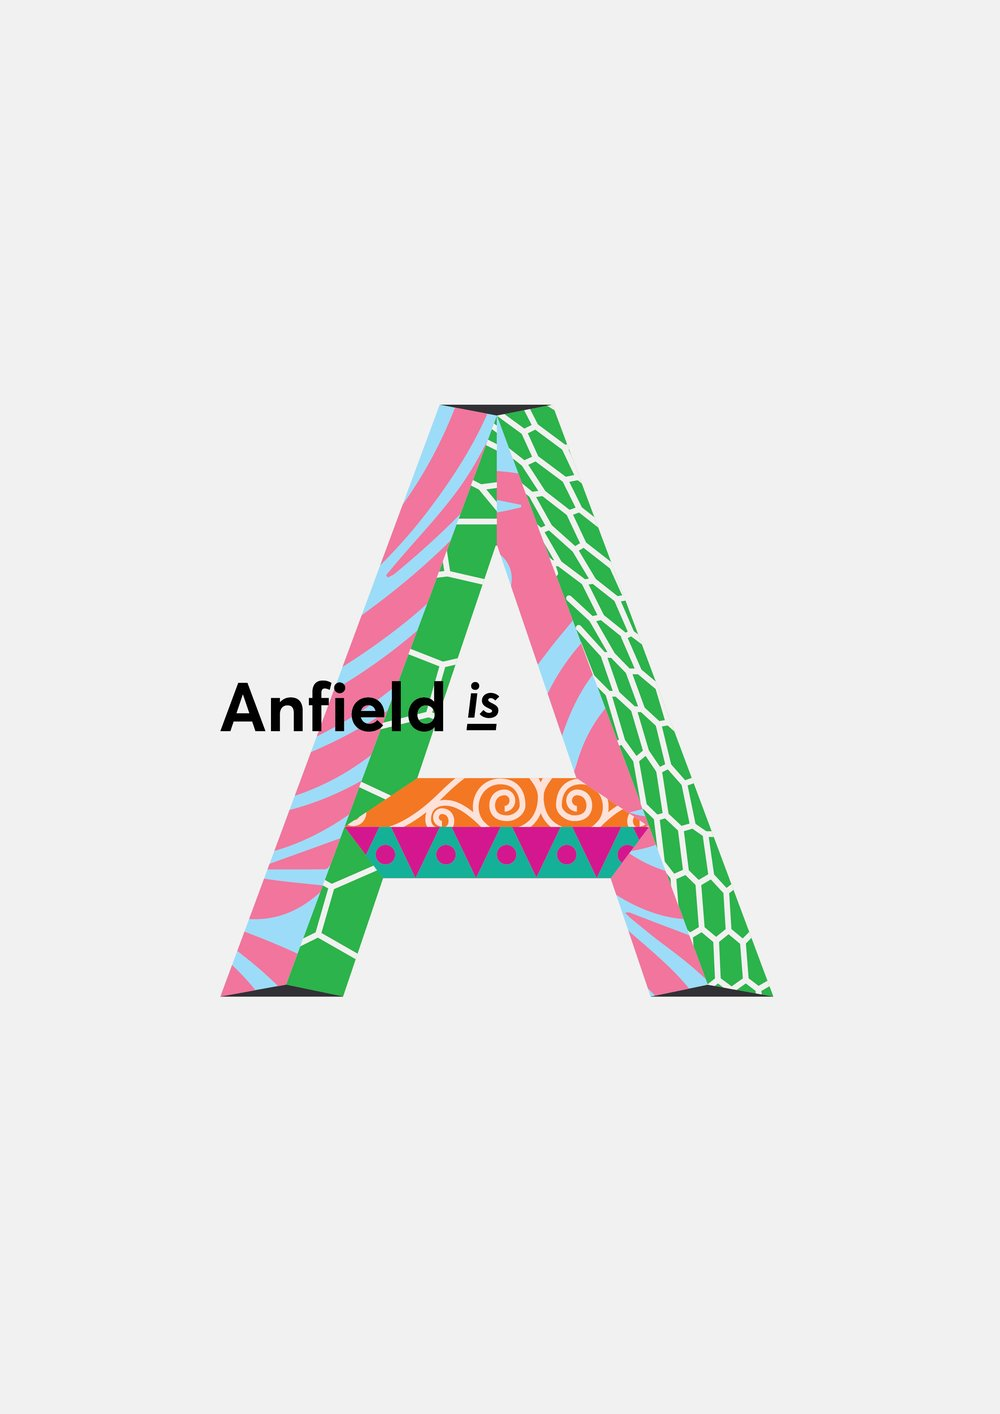 anfield A graphic